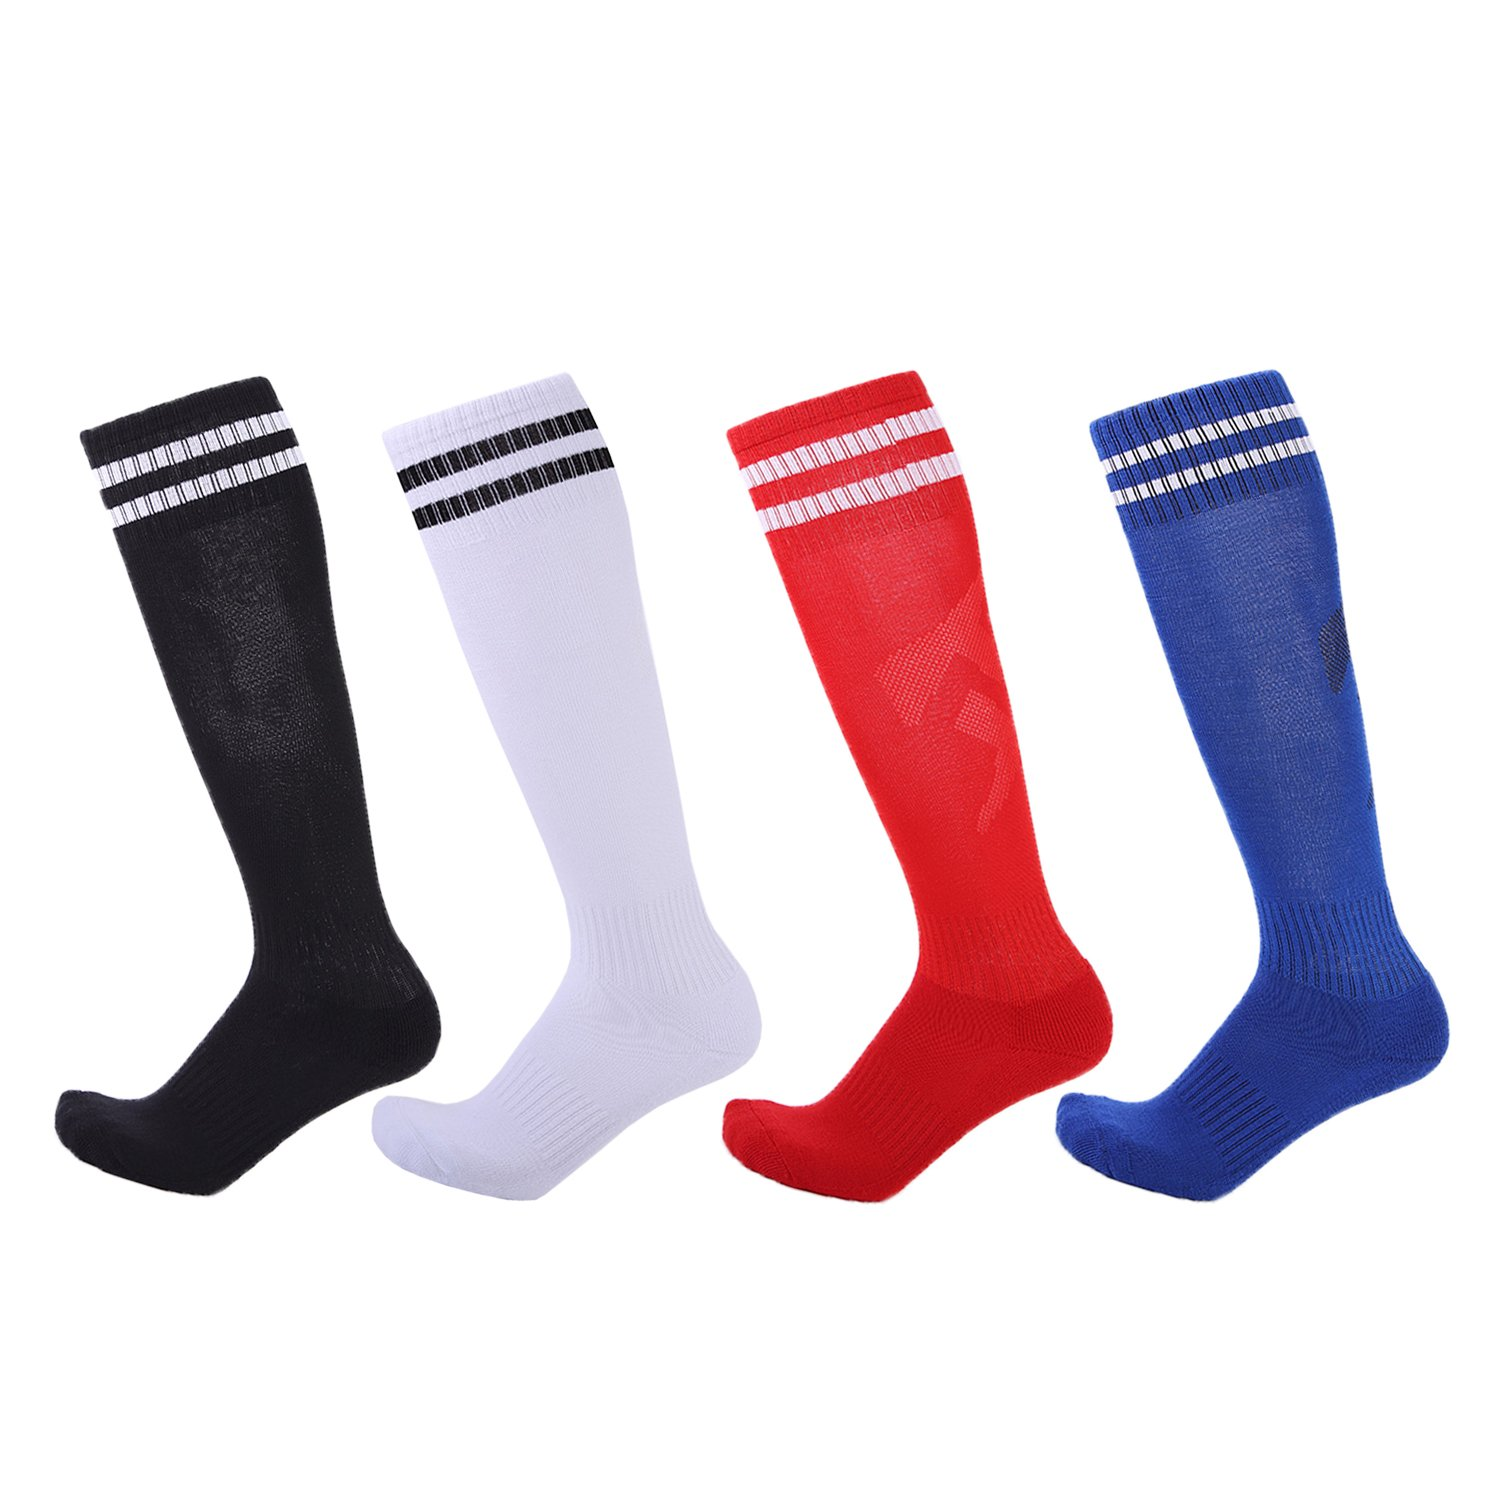 4 Pairs Boys Girls Soccer Socks Towel Cushioning Compression Sport Socks Cotton Team Socks for Children & Kids & Teenagers Black/White/Red/Sapphire by EBlife